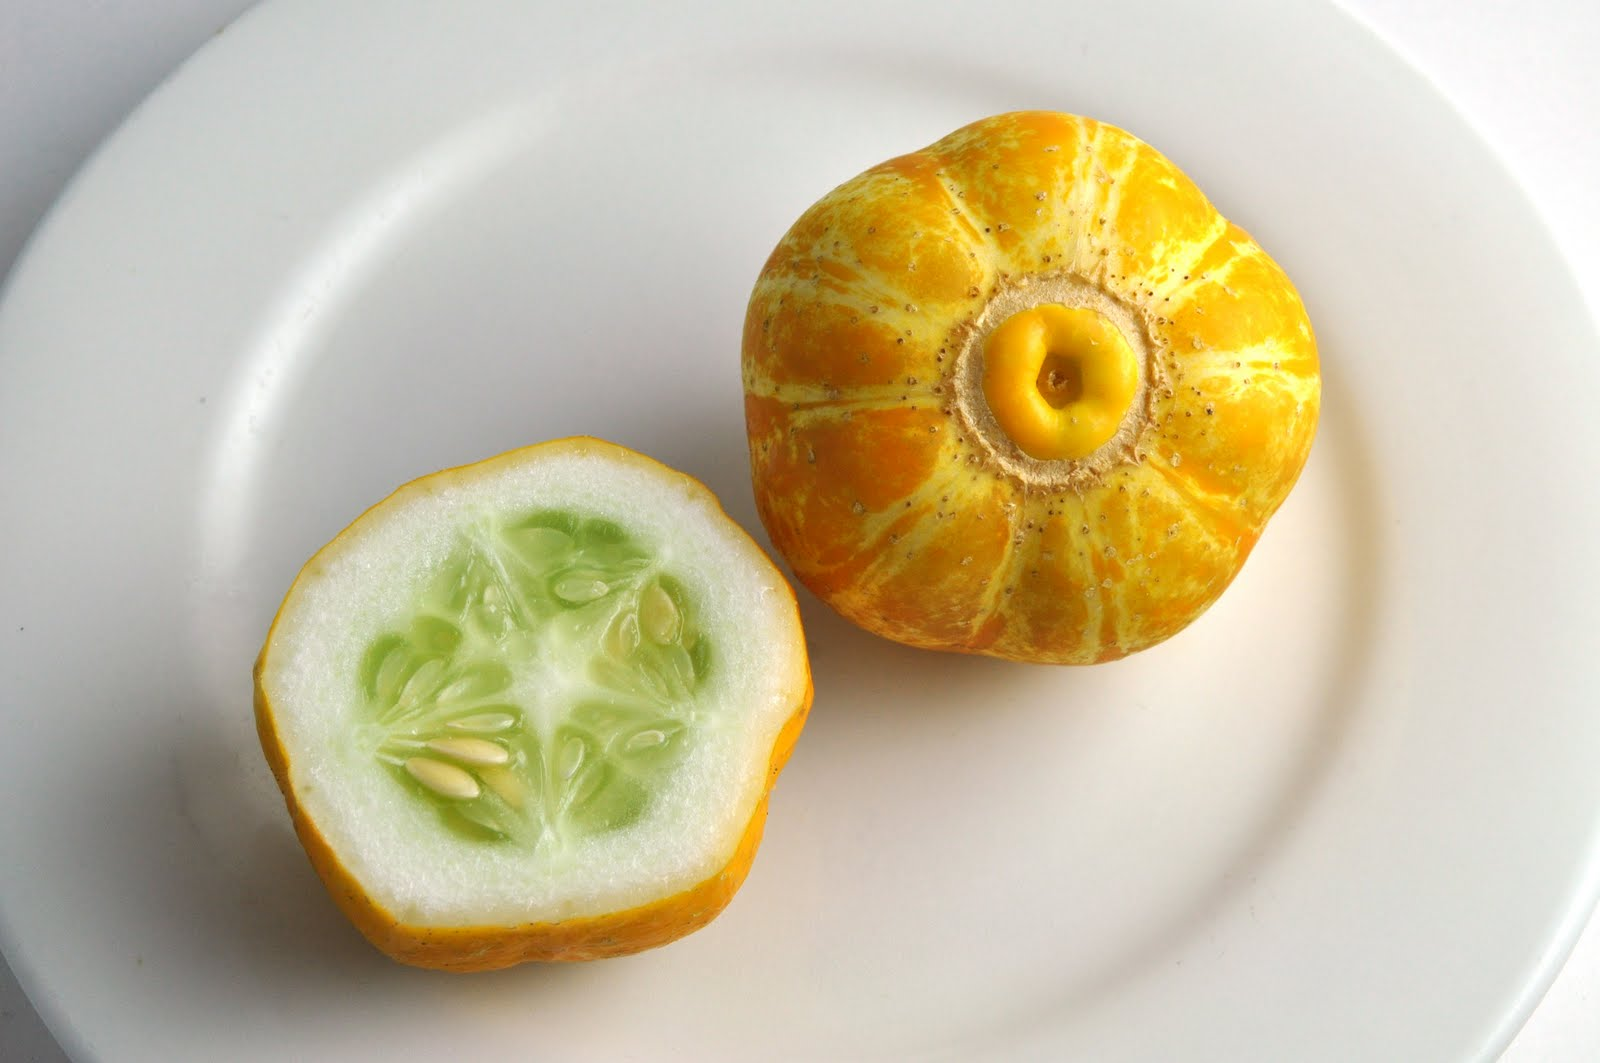 lemon cucumber 1.jpg